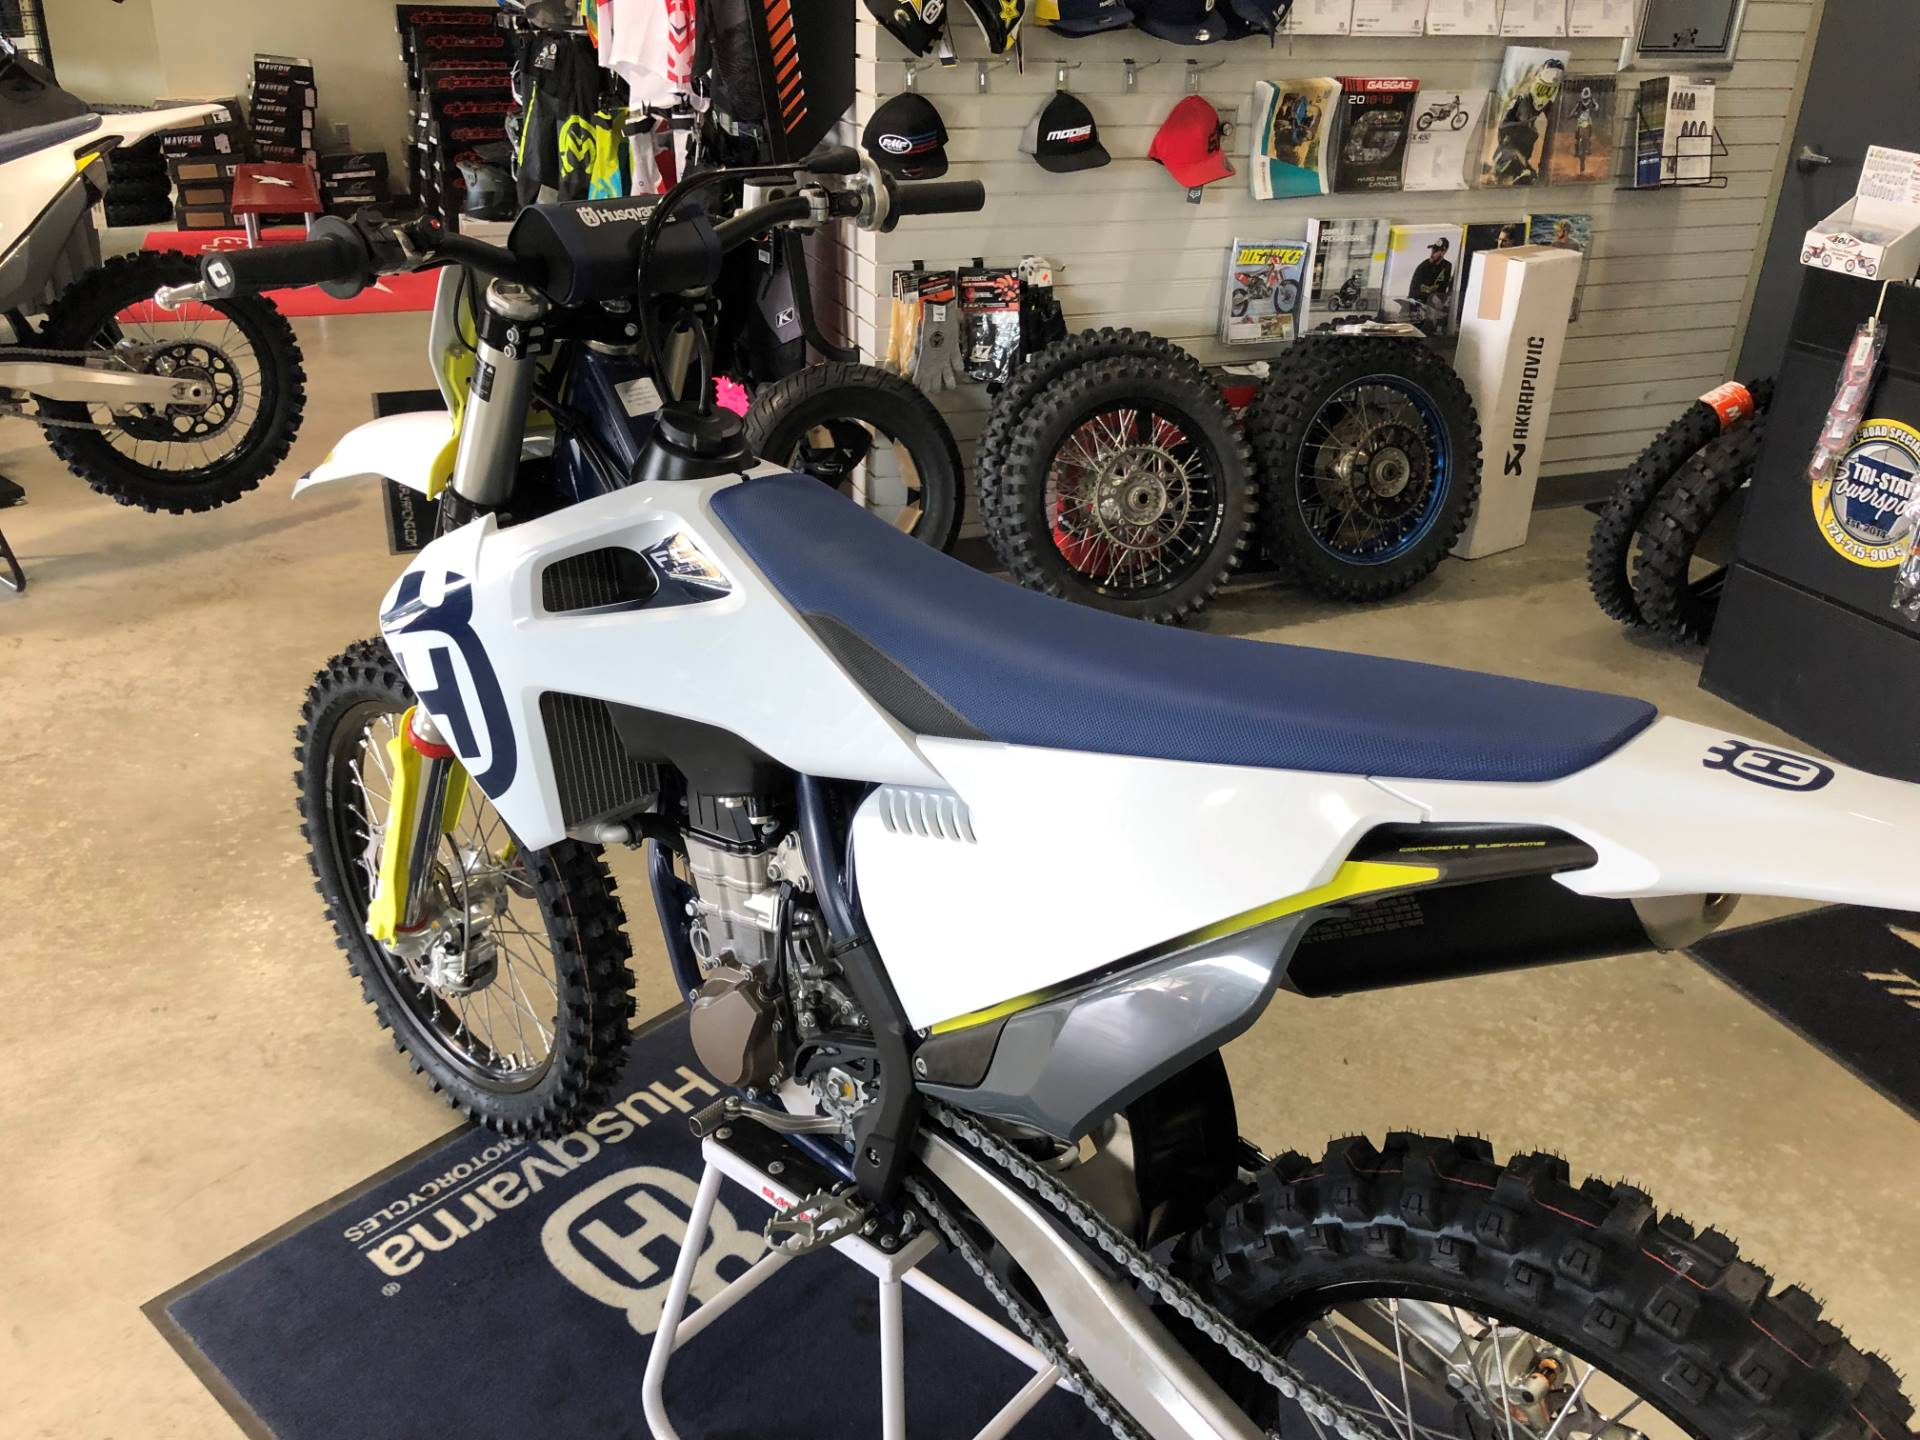 2020 Husqvarna FC 450 in Slovan, Pennsylvania - Photo 7